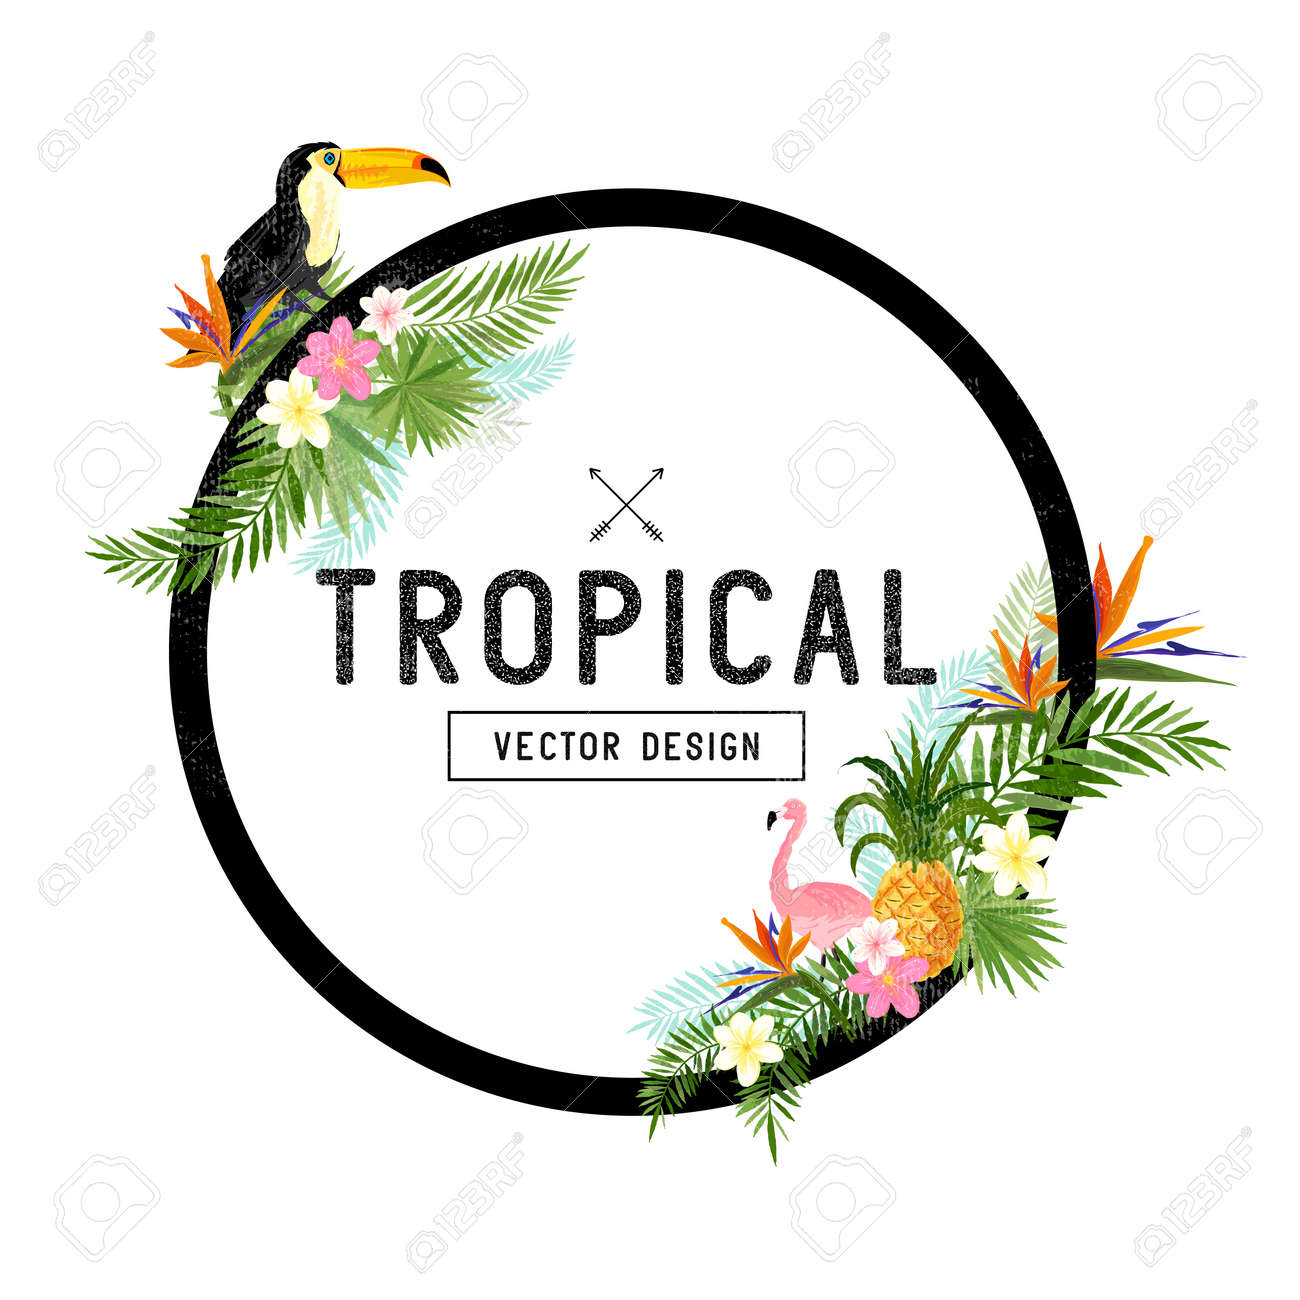 Tropical Border Design. tropical hand drawn elements including bird of paradise flower, Toucan and flamingo birds and tropical floral elements. - 54312252